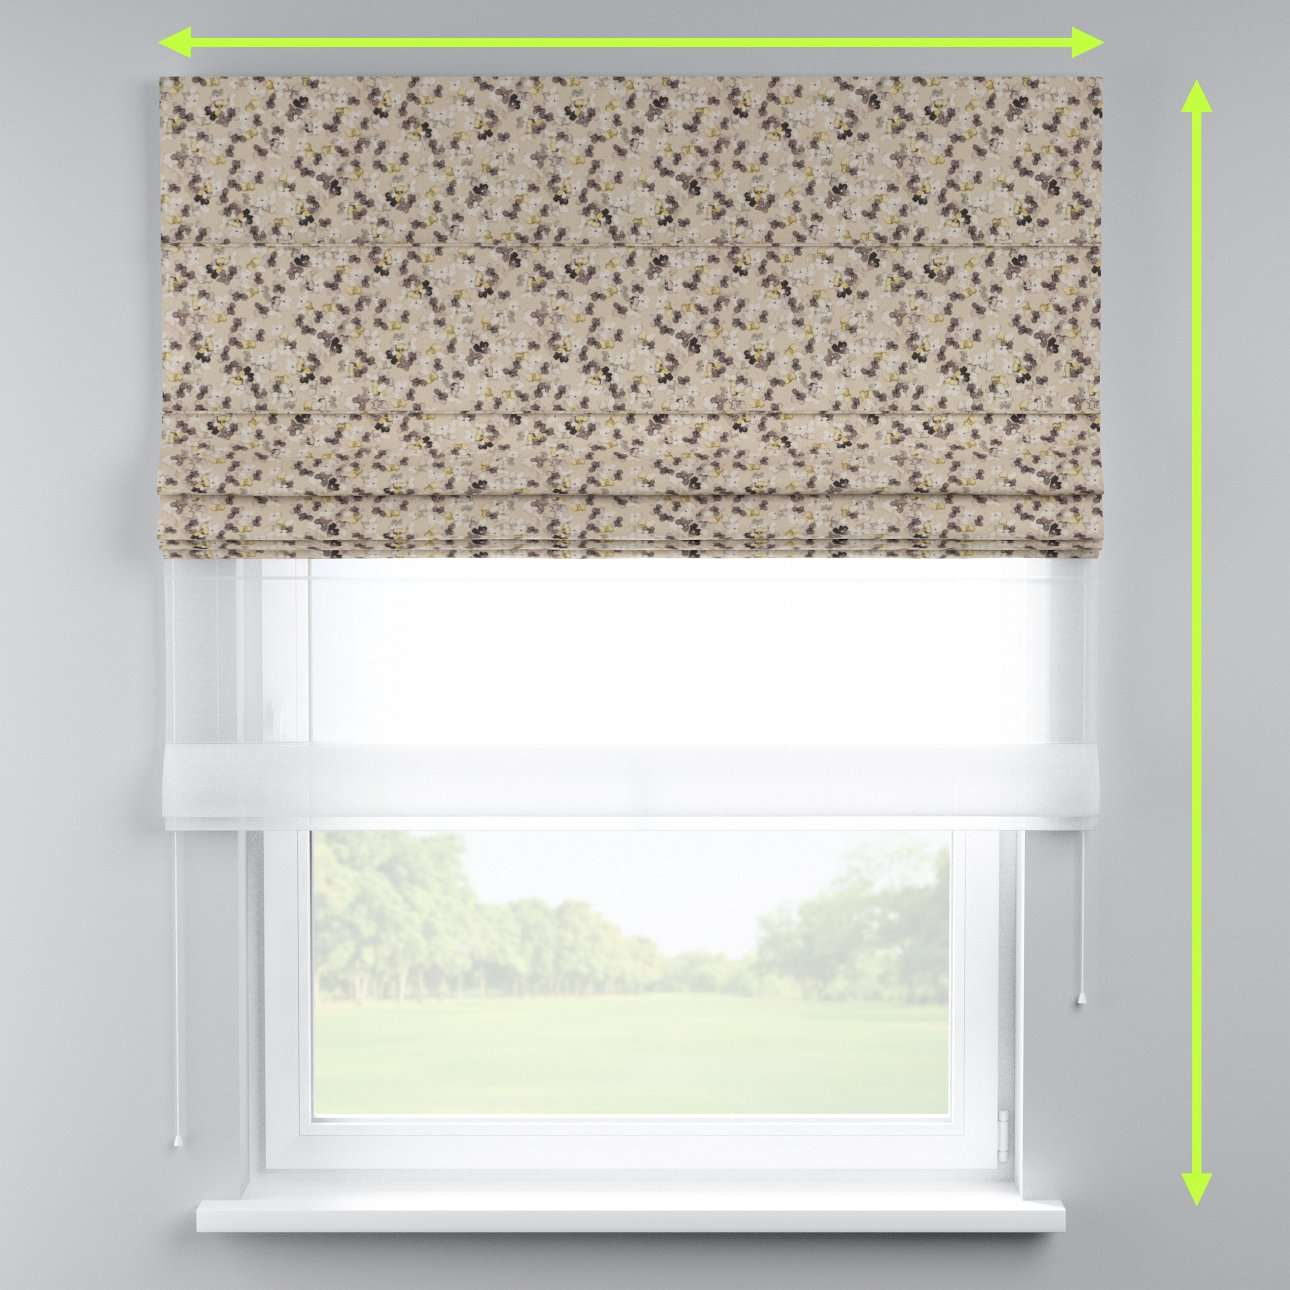 Voile and fabric roman blind (DUO II) in collection Londres, fabric: 140-48